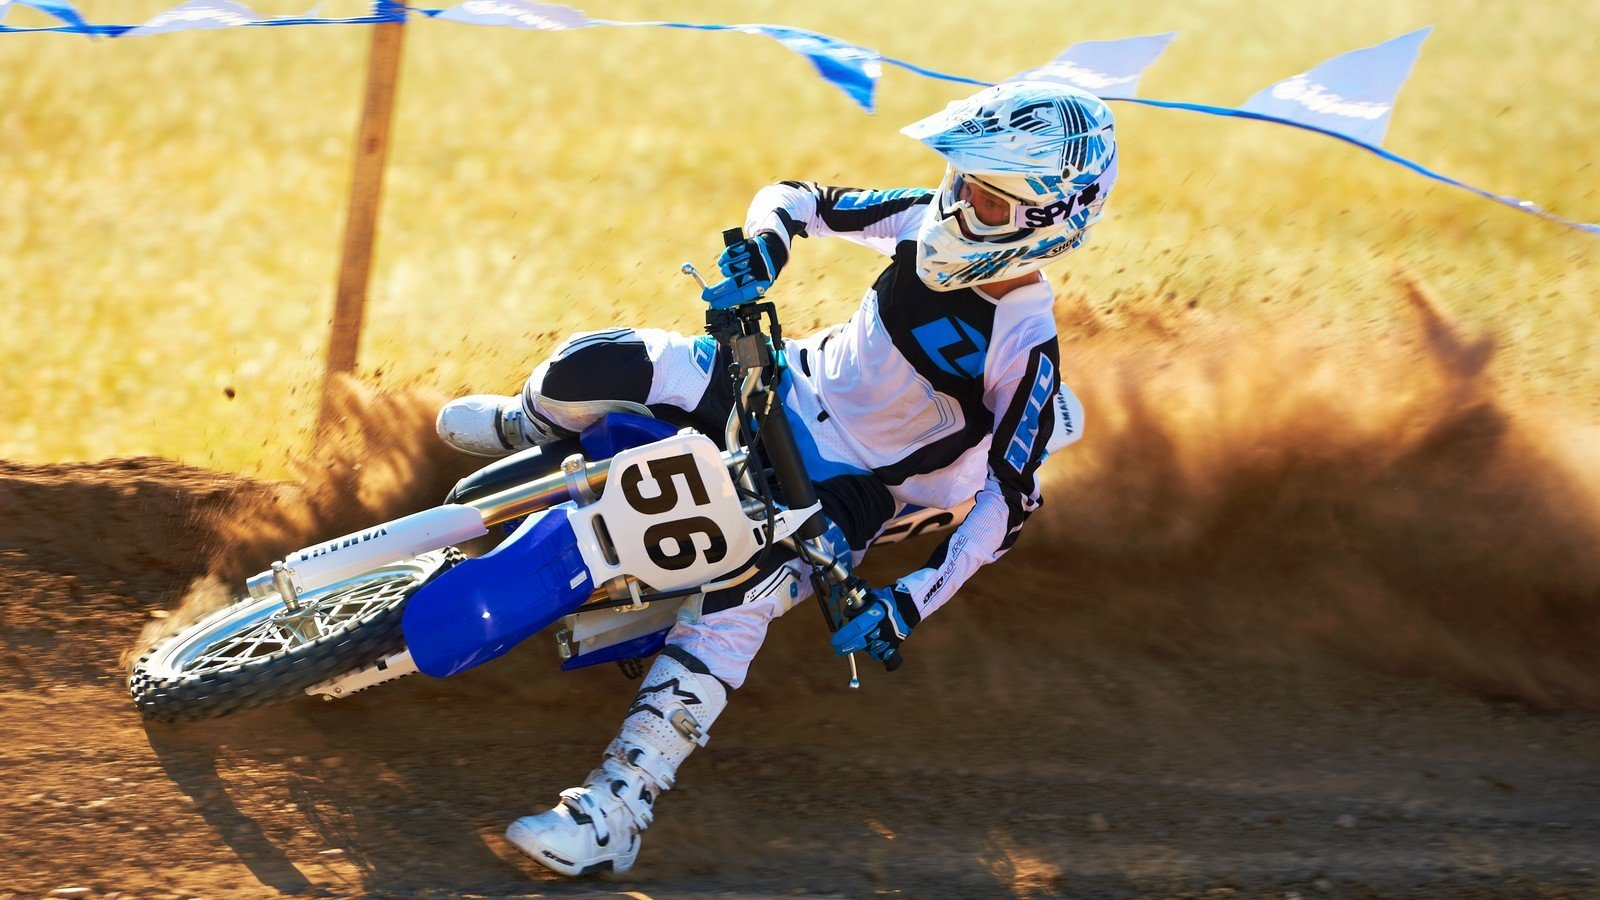 2013 yamaha yz85 picture 464550 motorcycle review for Yamaha yz85 top speed